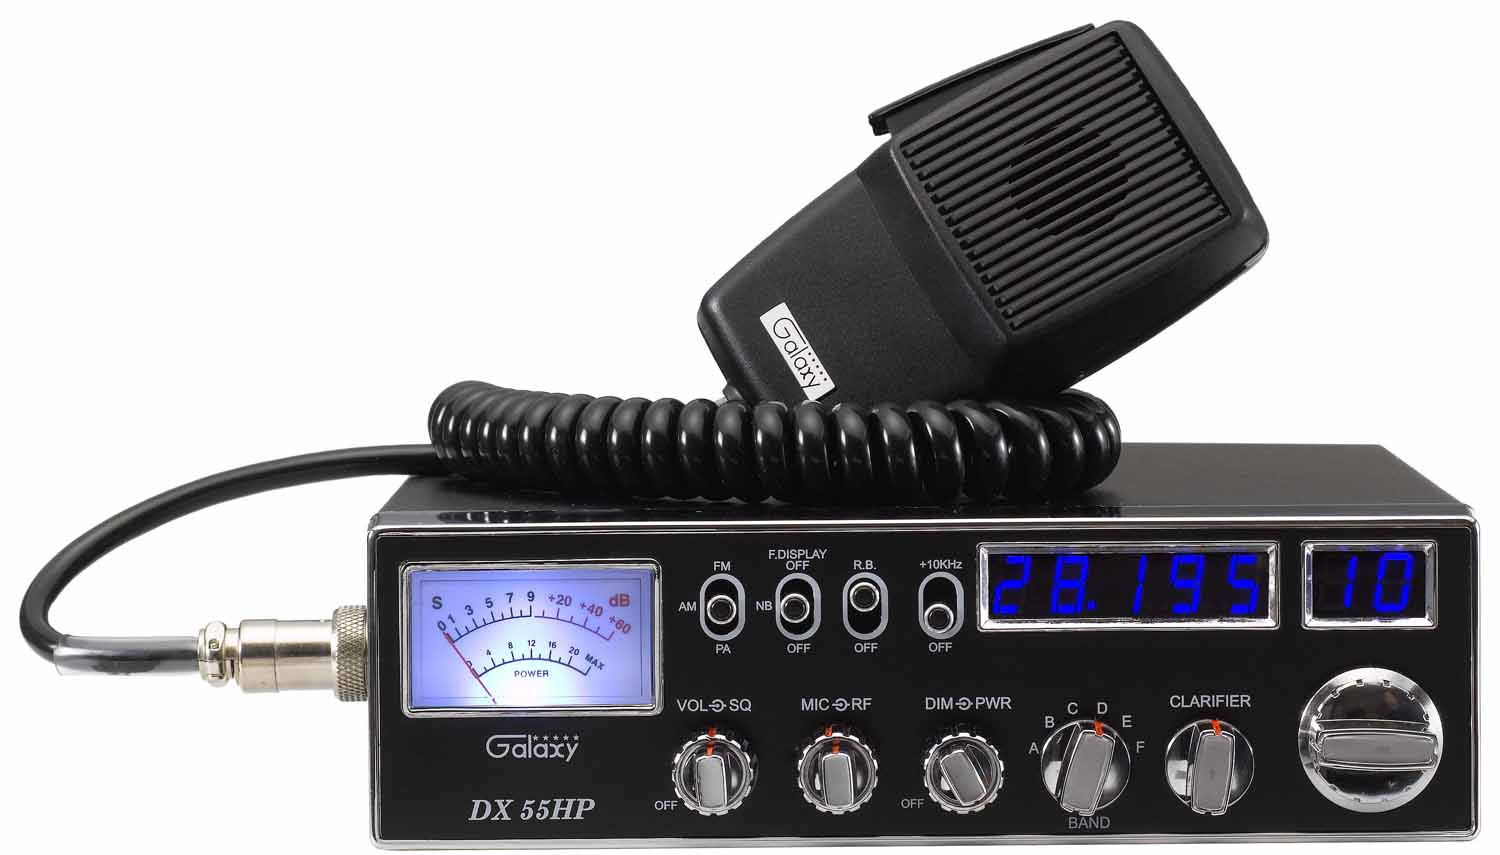 DX55HP - 45 Watt 10 Meter Radio